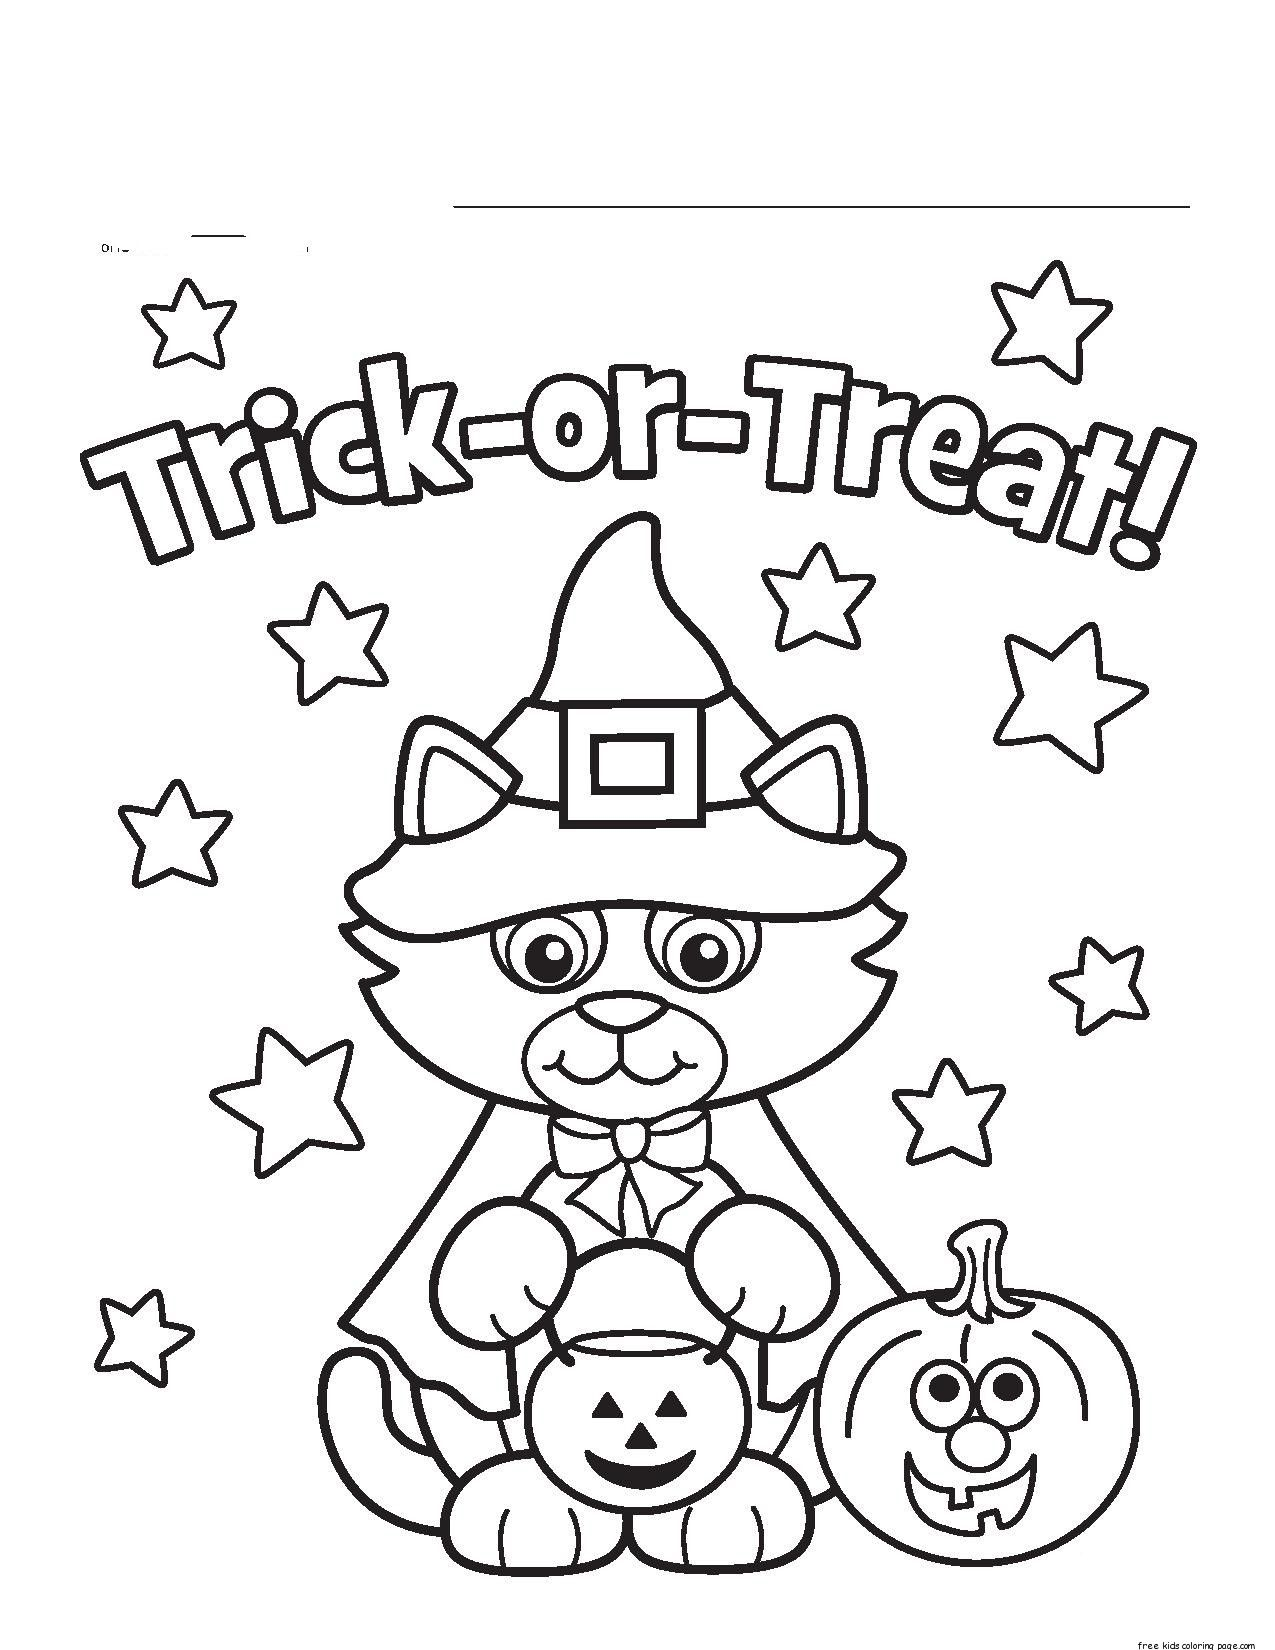 Free halloween coloring pages to print out - Free Printable Halloween Coloring Pages Kids Halloween The Festival Of Candies Taking Disguises